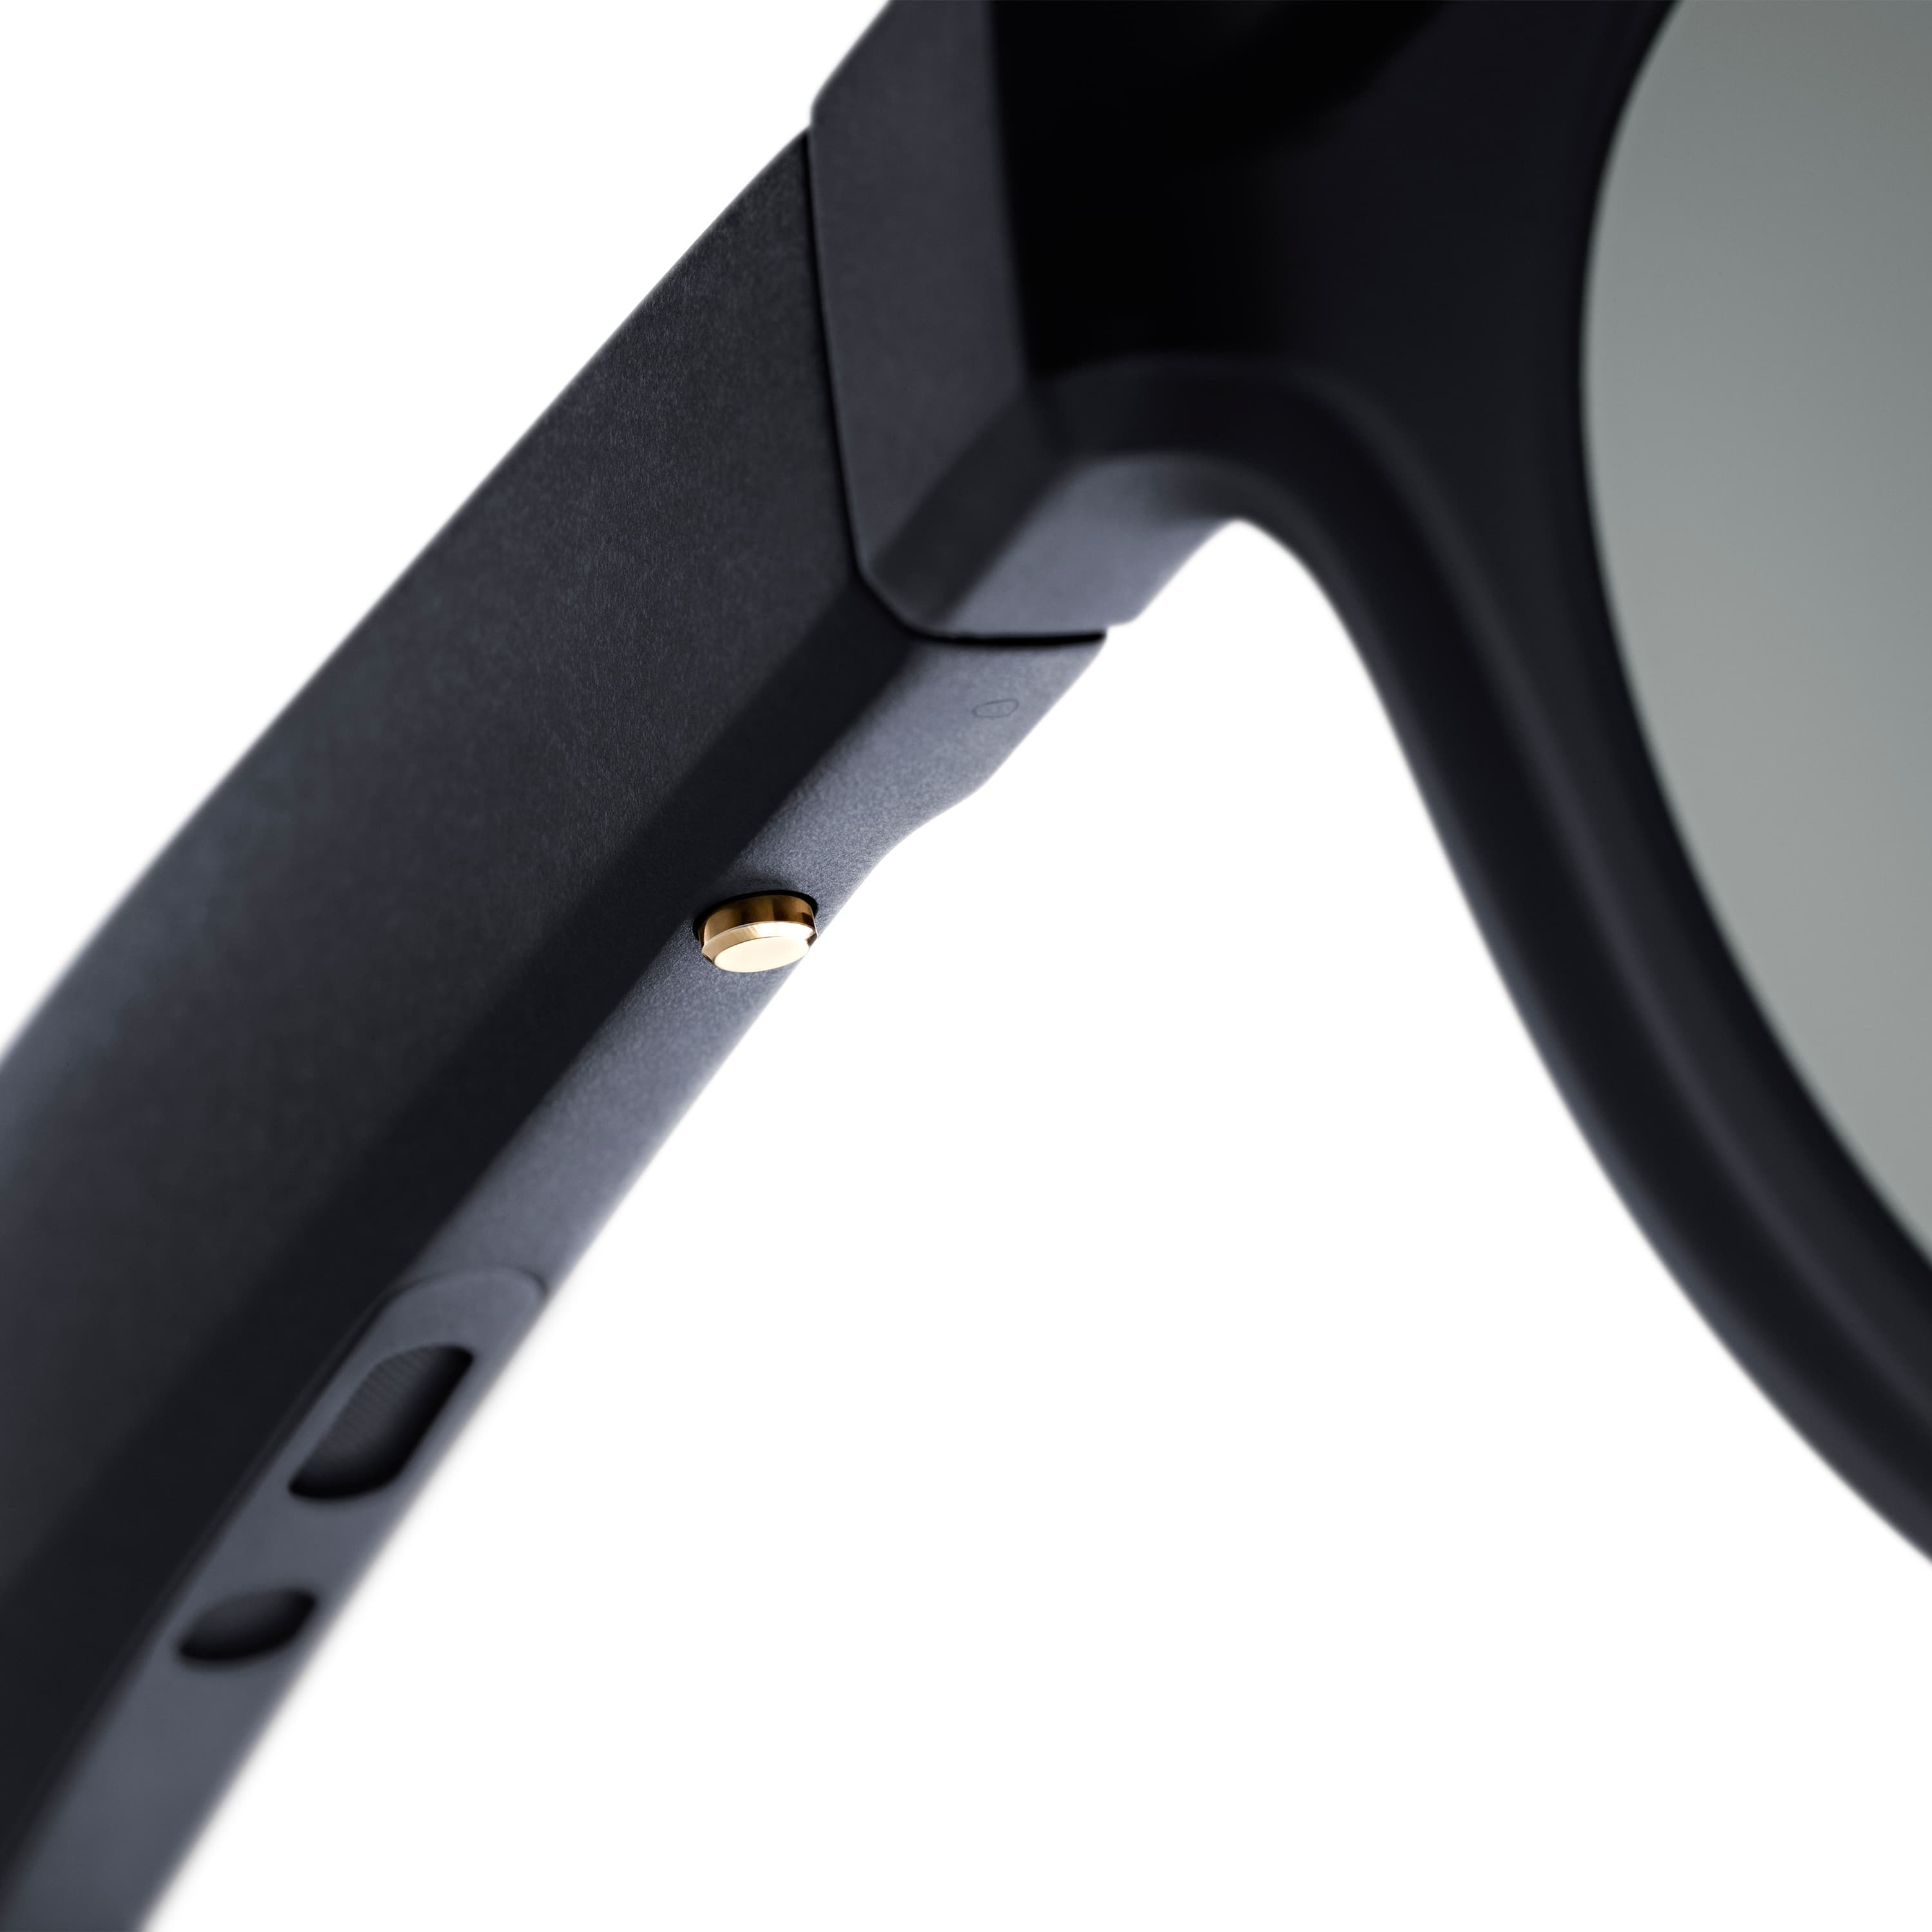 4b5bc708af8 The Bose Frames are the company s first audio AR sunglasses ...